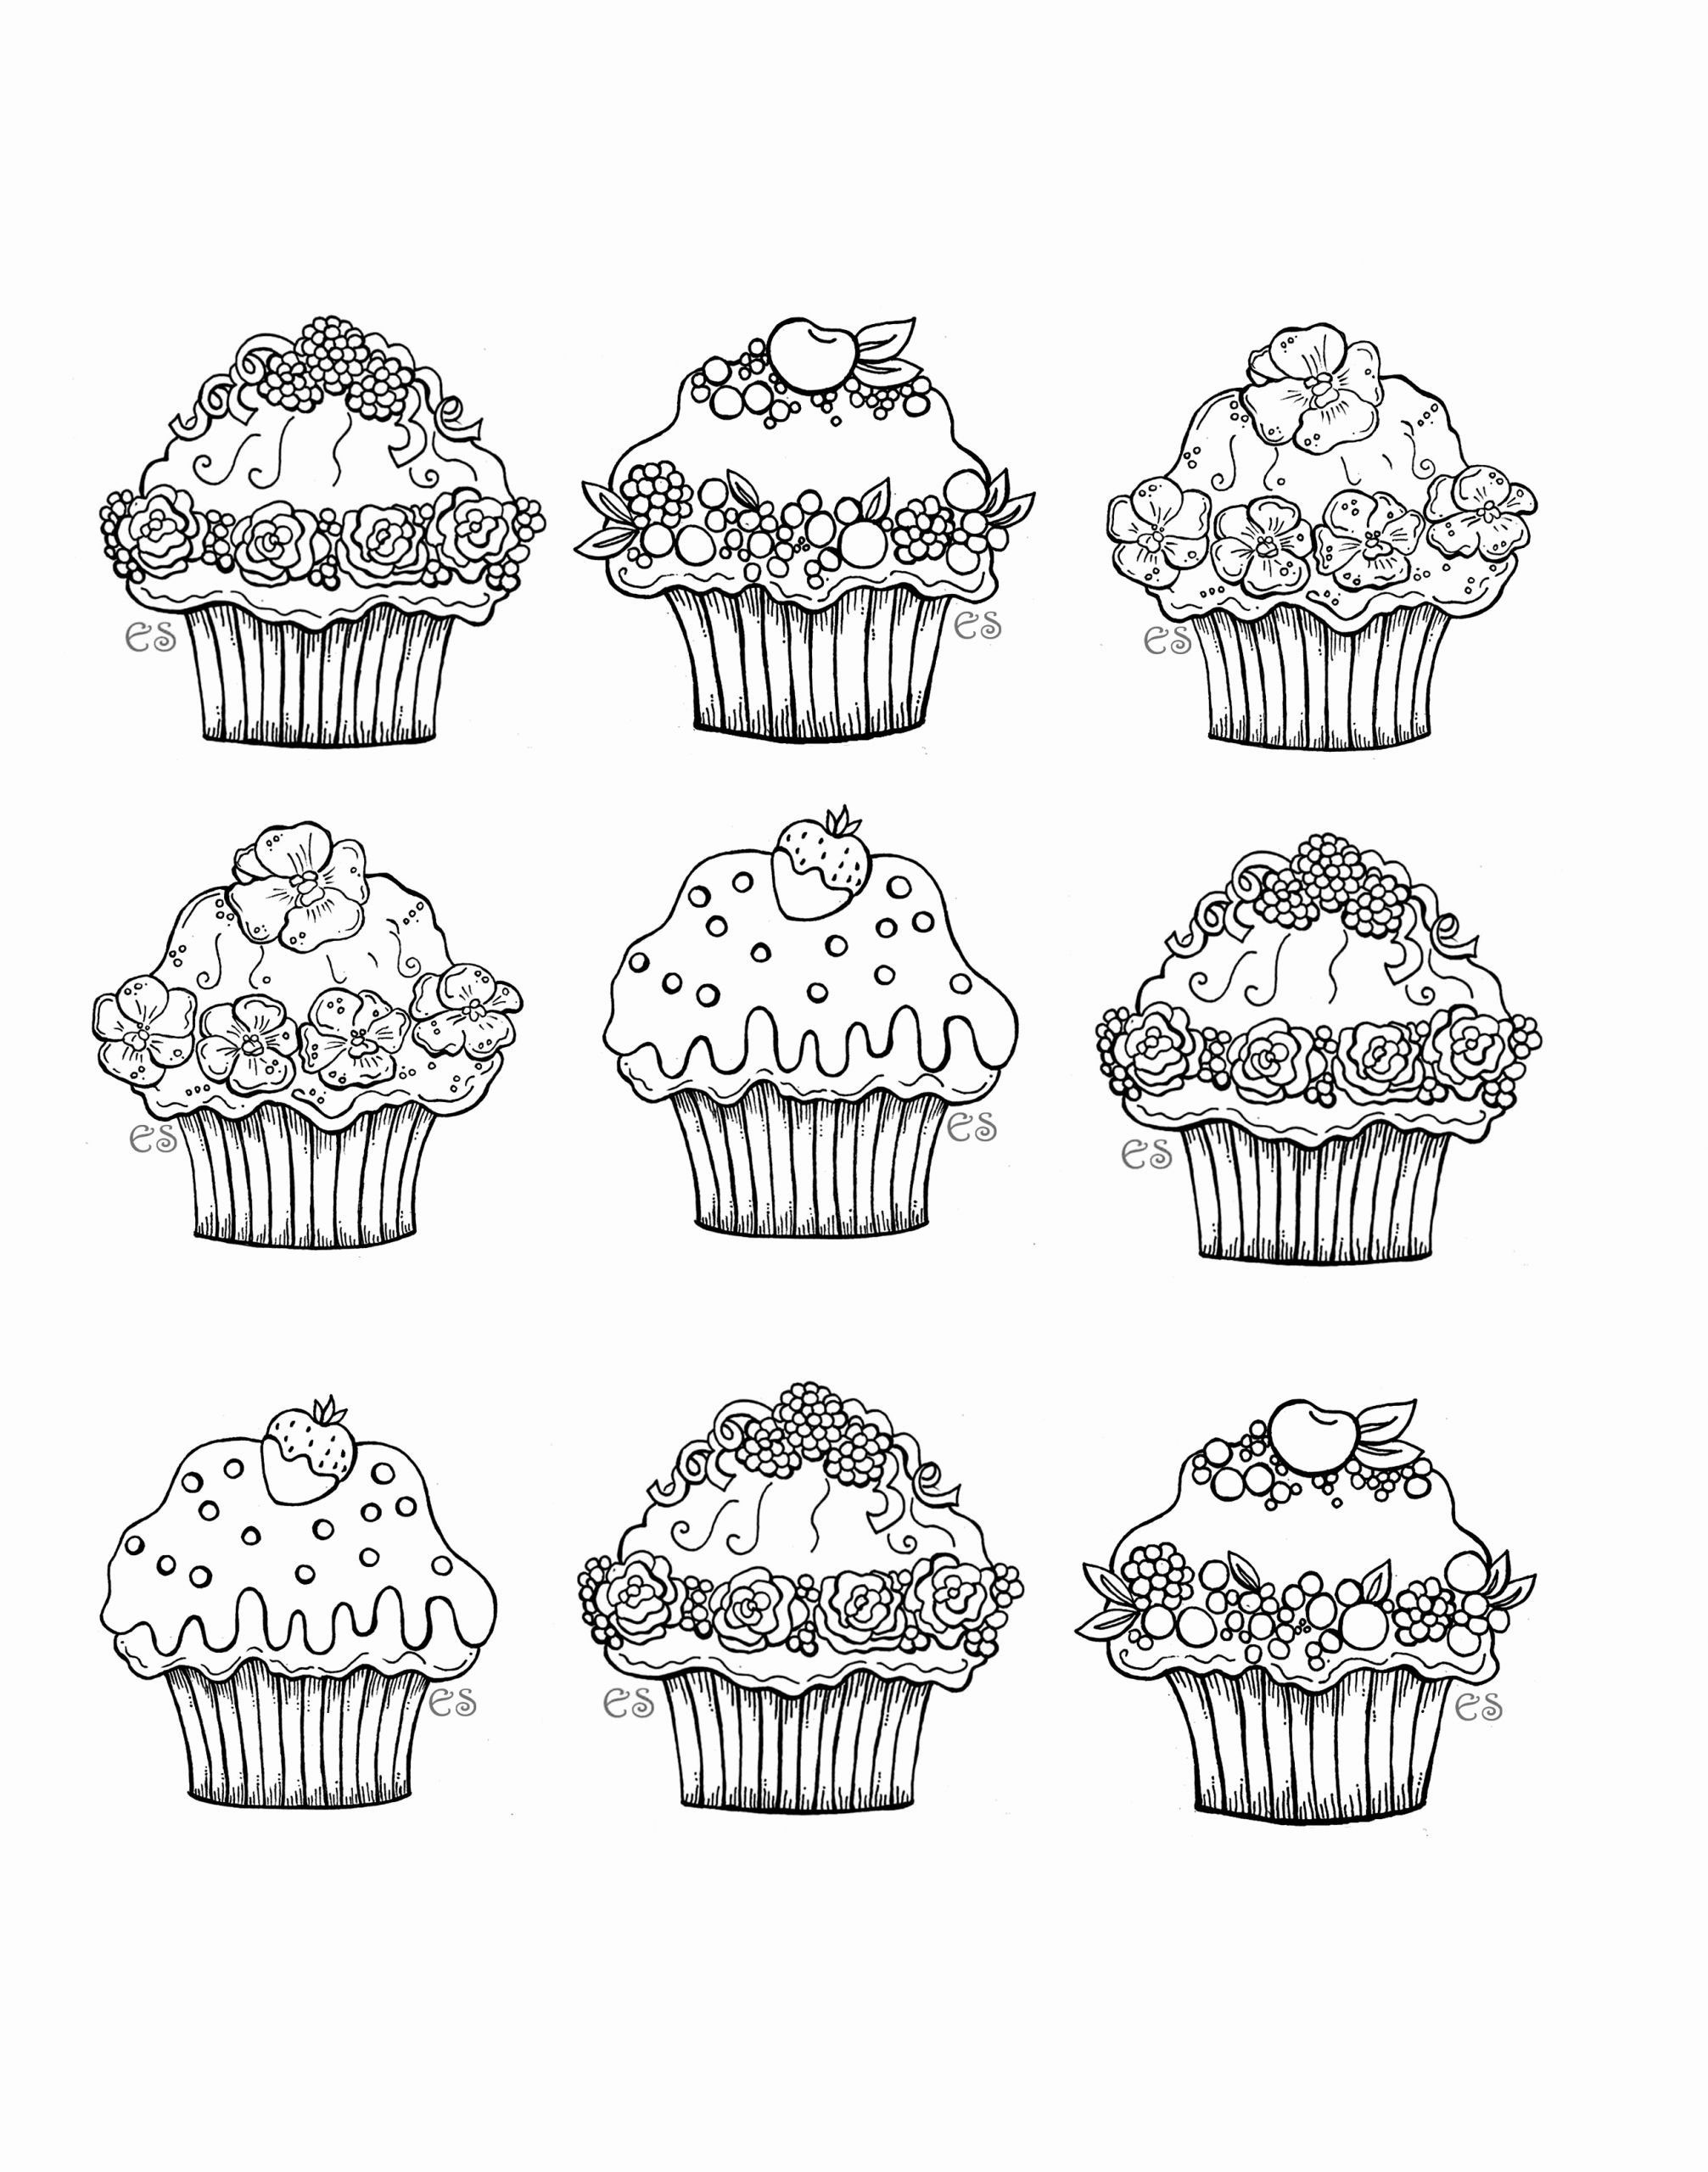 Cake Coloring Pages For Adults In